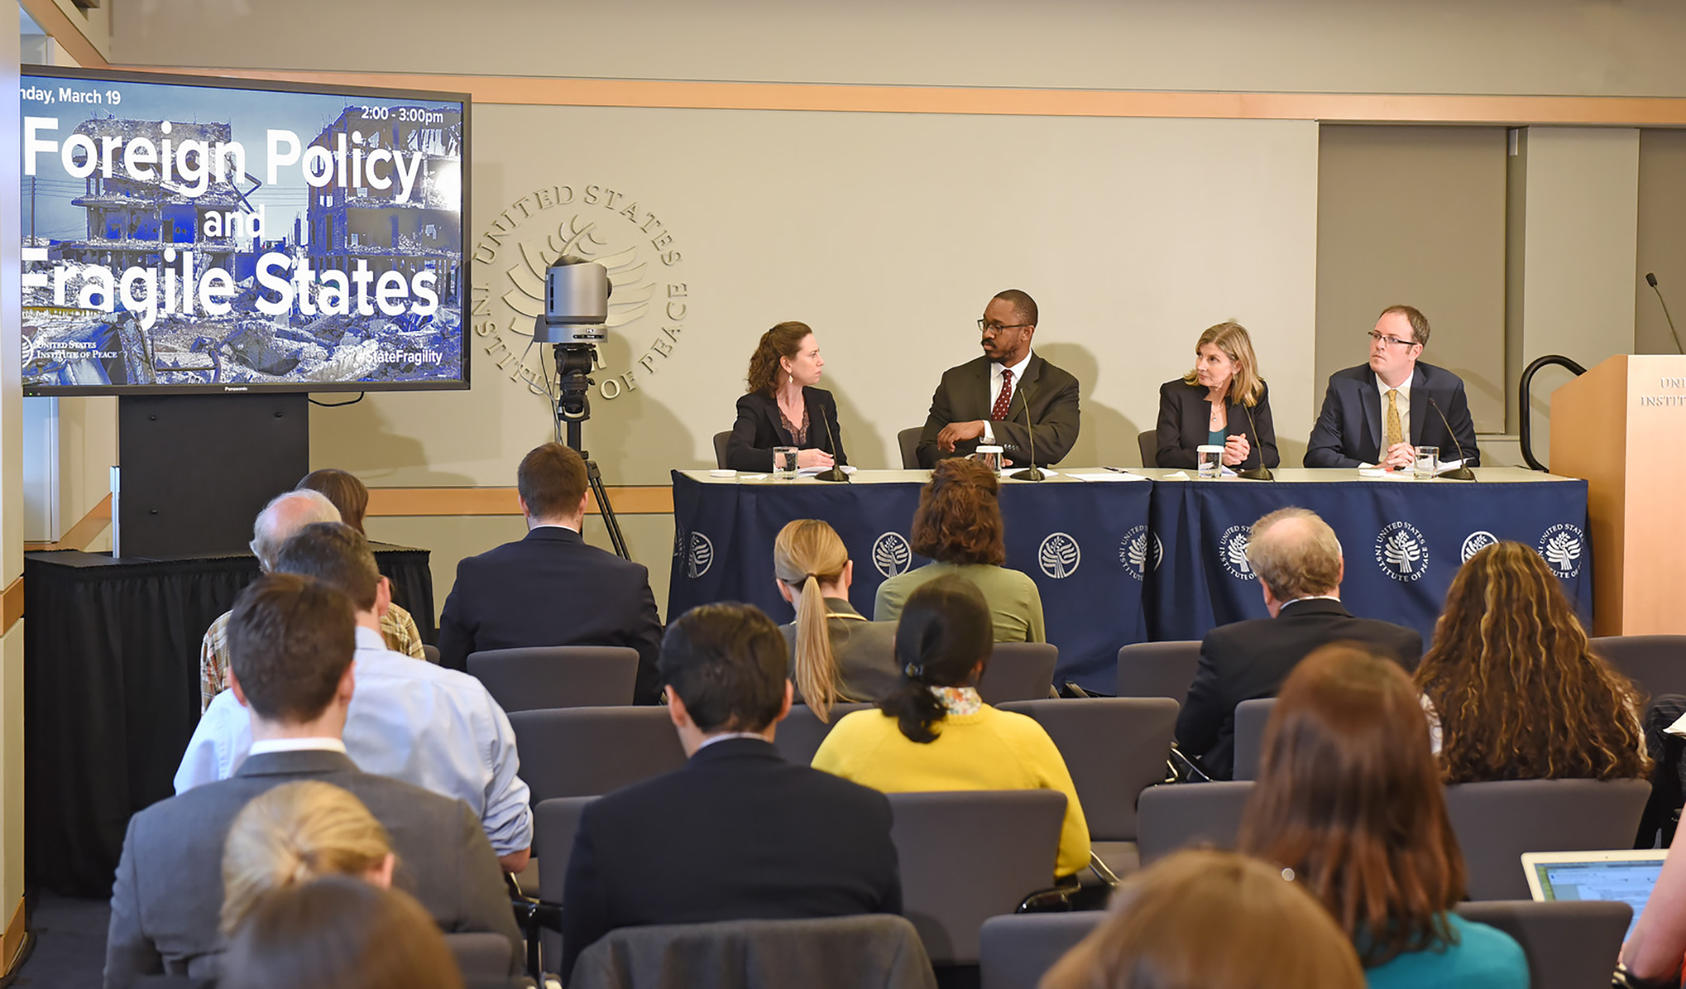 Pictured from left to right, Kimberly Kagan, Joshua Johnson, Nancy Lindborg, Ilan Goldenberg